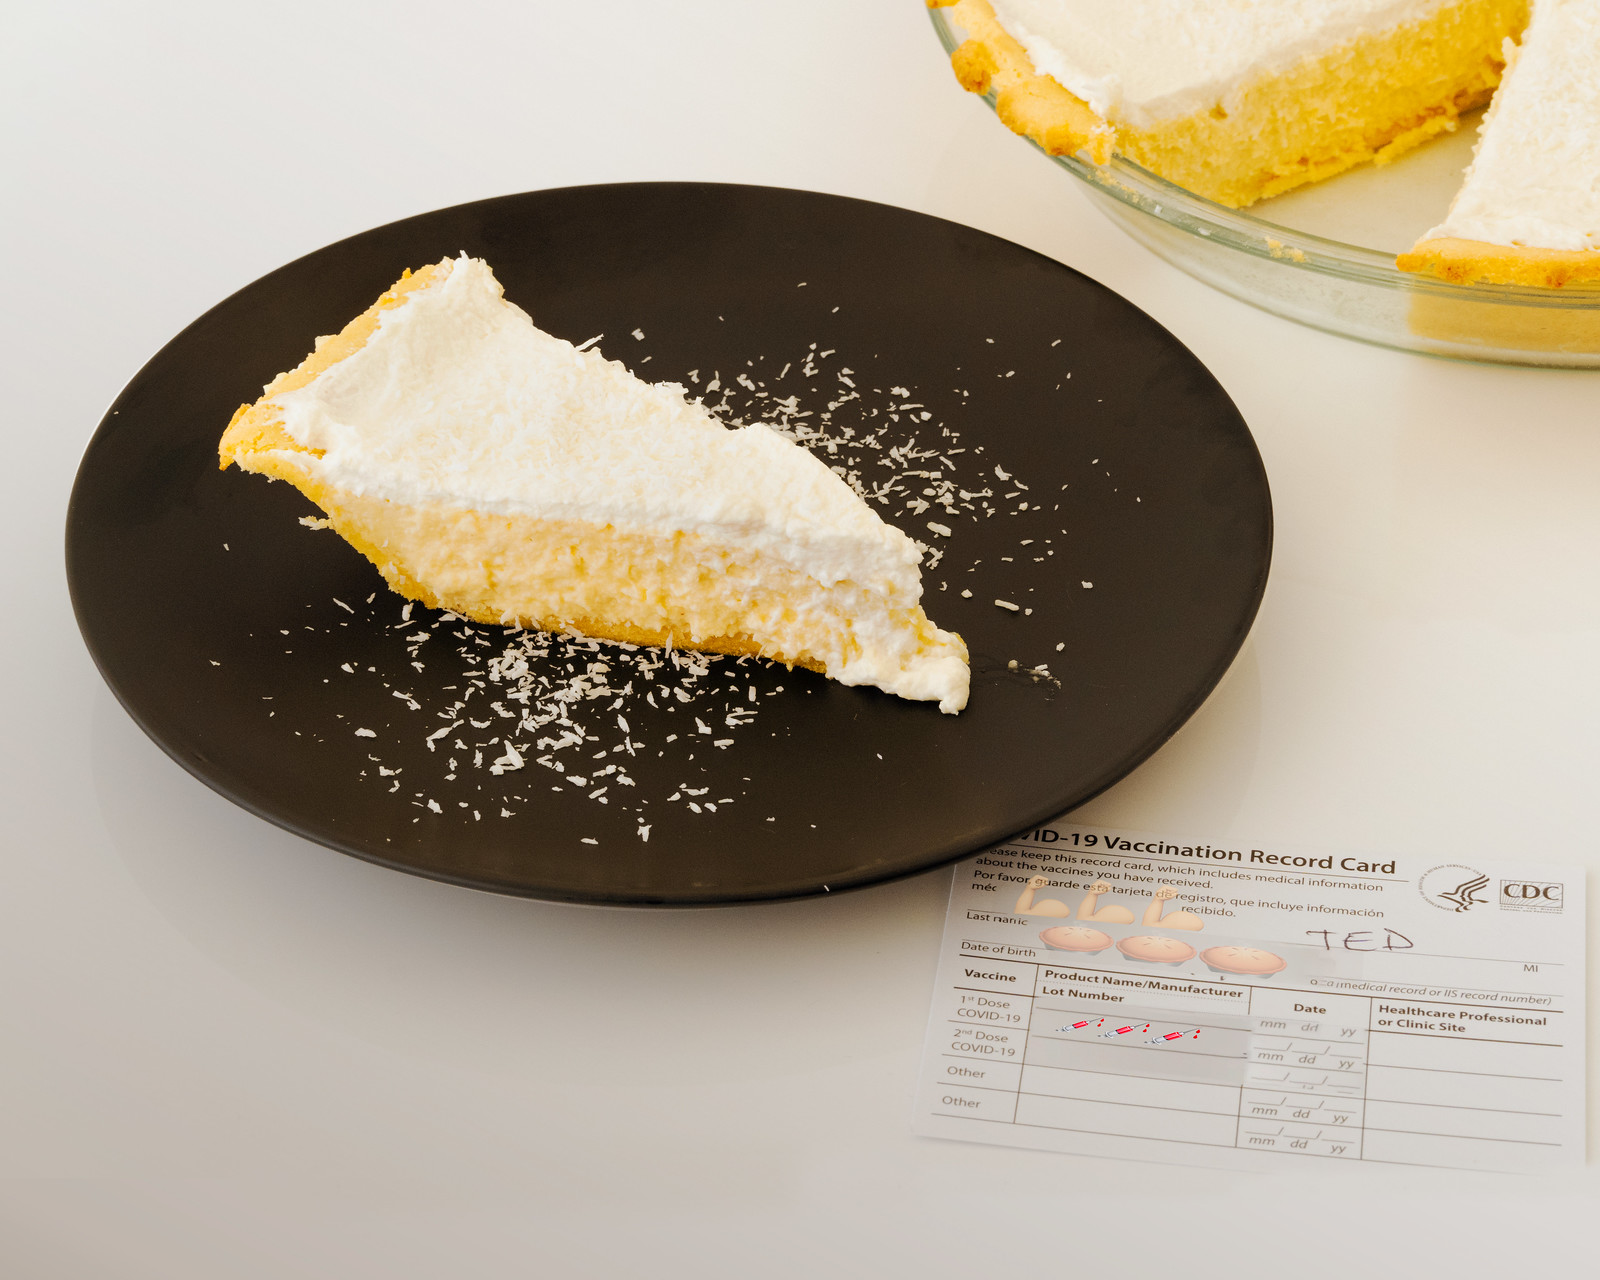 Photo Friday/Recipe: Low Carbohydrate, Healthy Fat Coconut Cream Pie w a side of COVID-19 vaccine